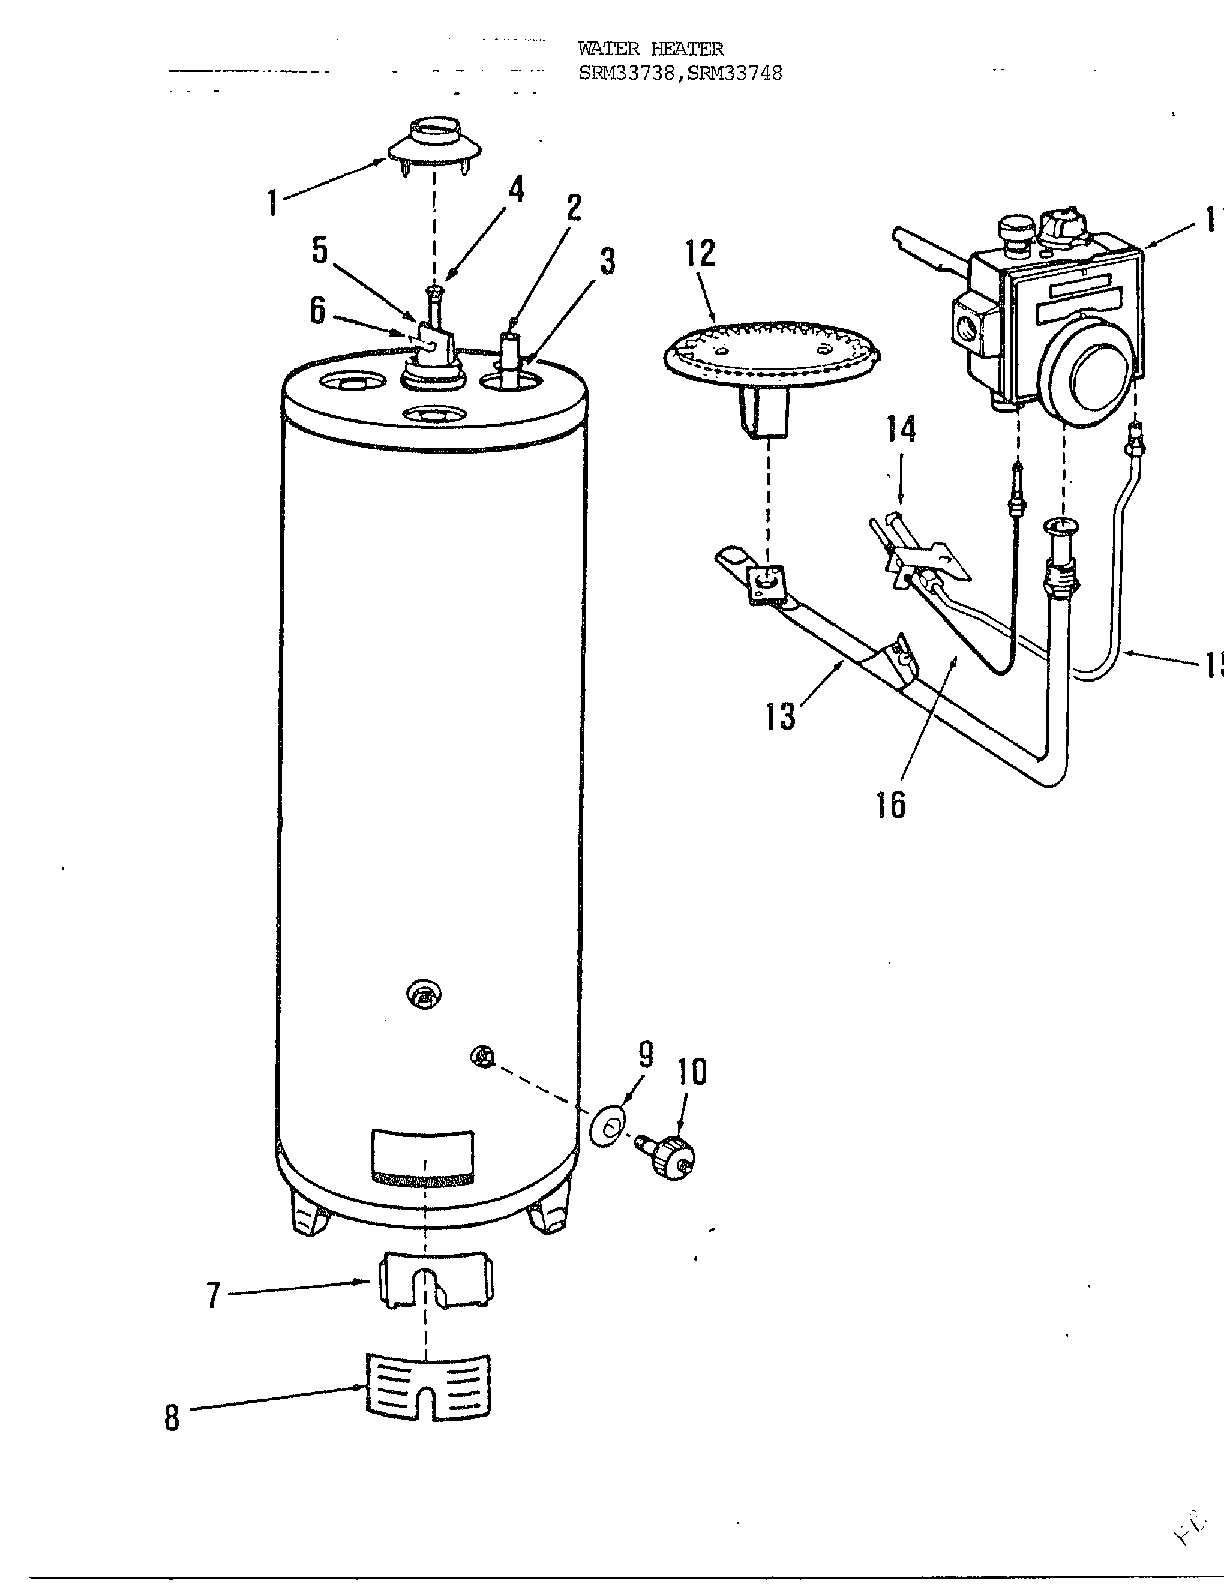 hight resolution of whirlpool hot water heater part diagram